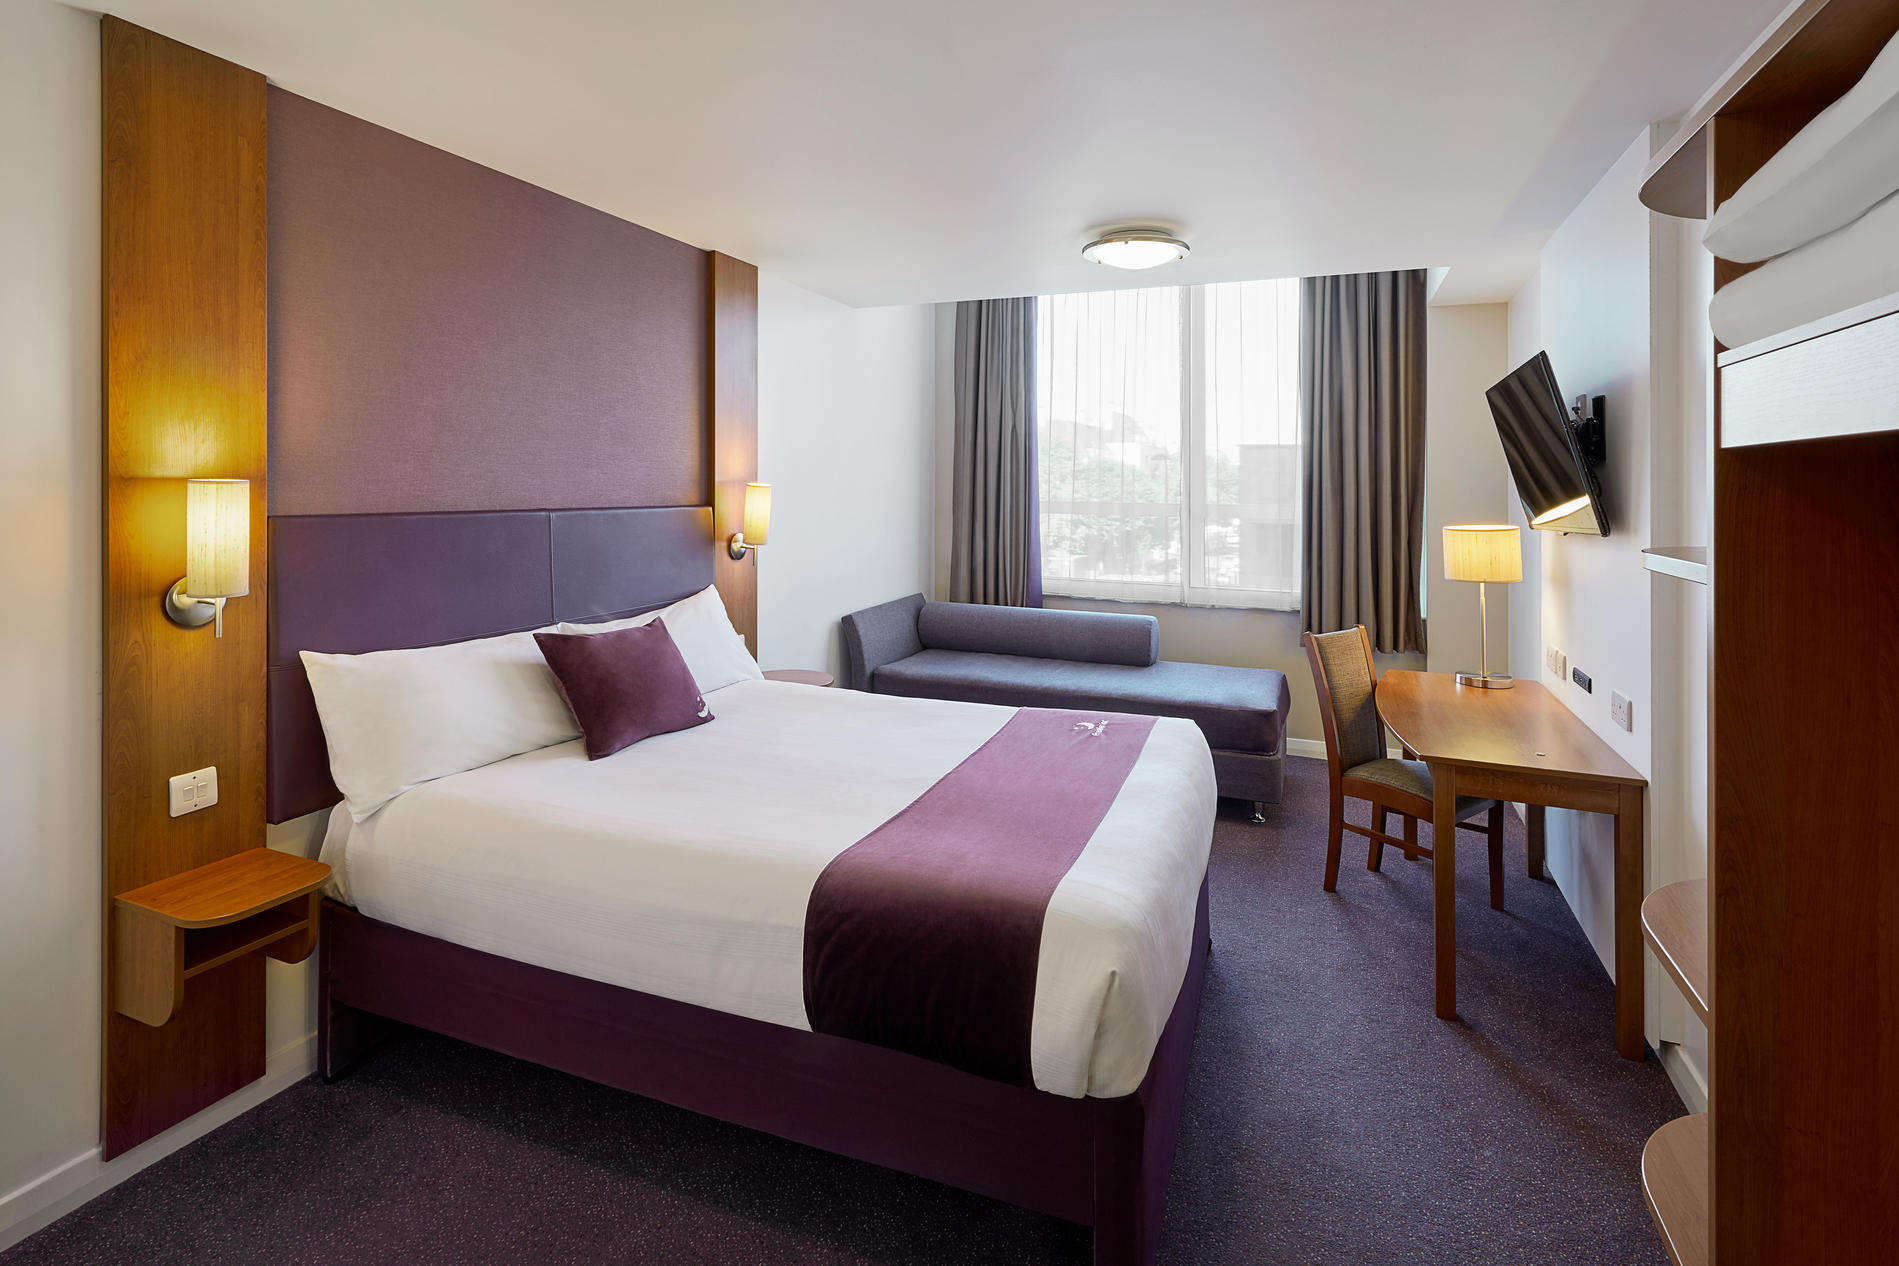 Premier Inn bedroom with double bed, sofa and flat screen TV